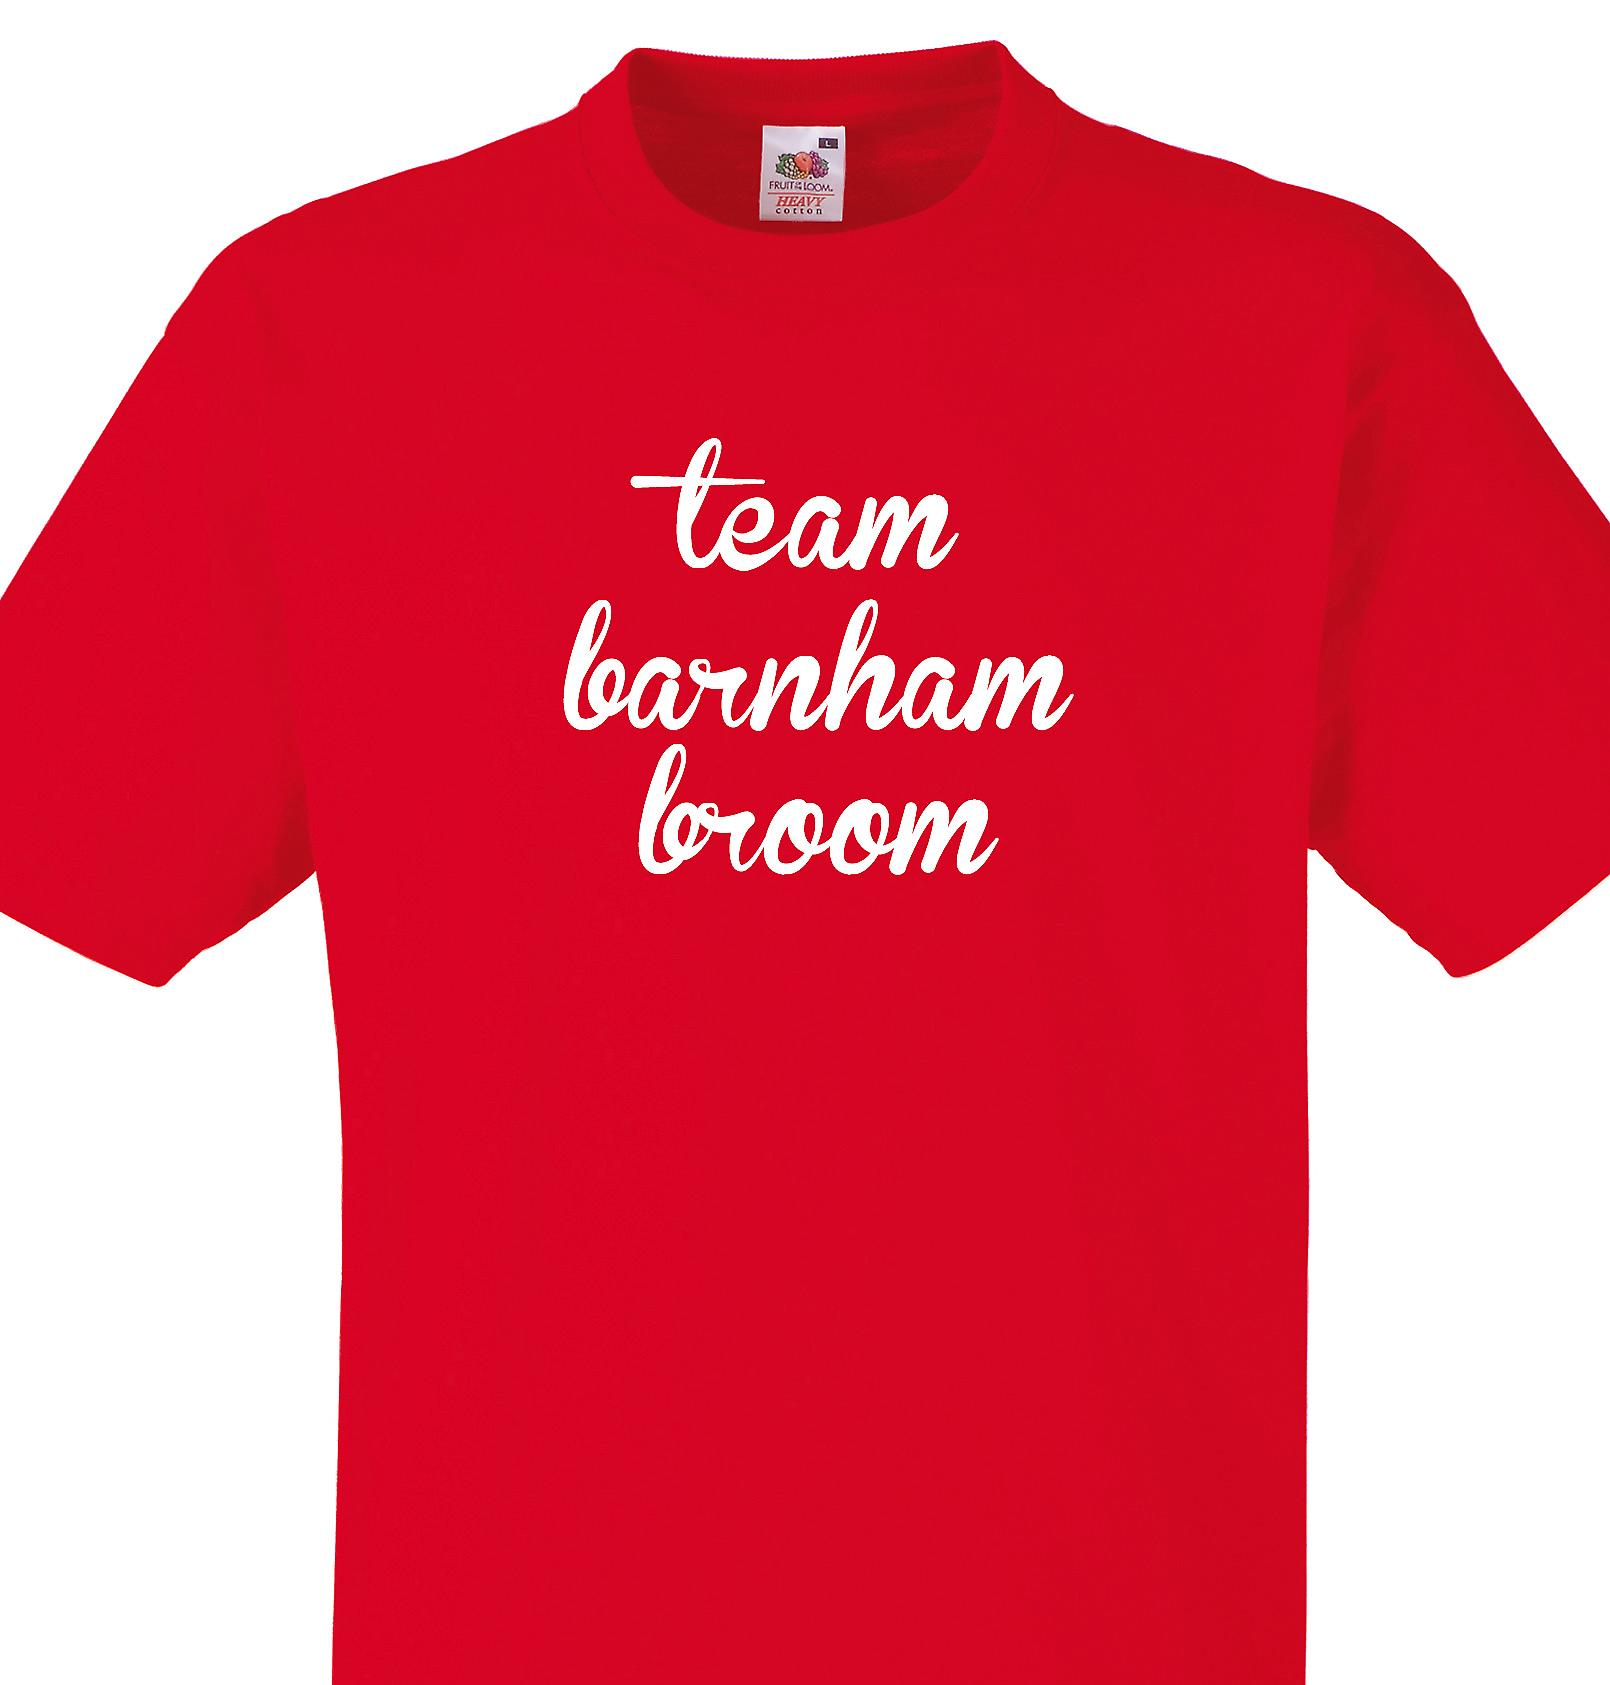 Team Barnham broom Red T shirt